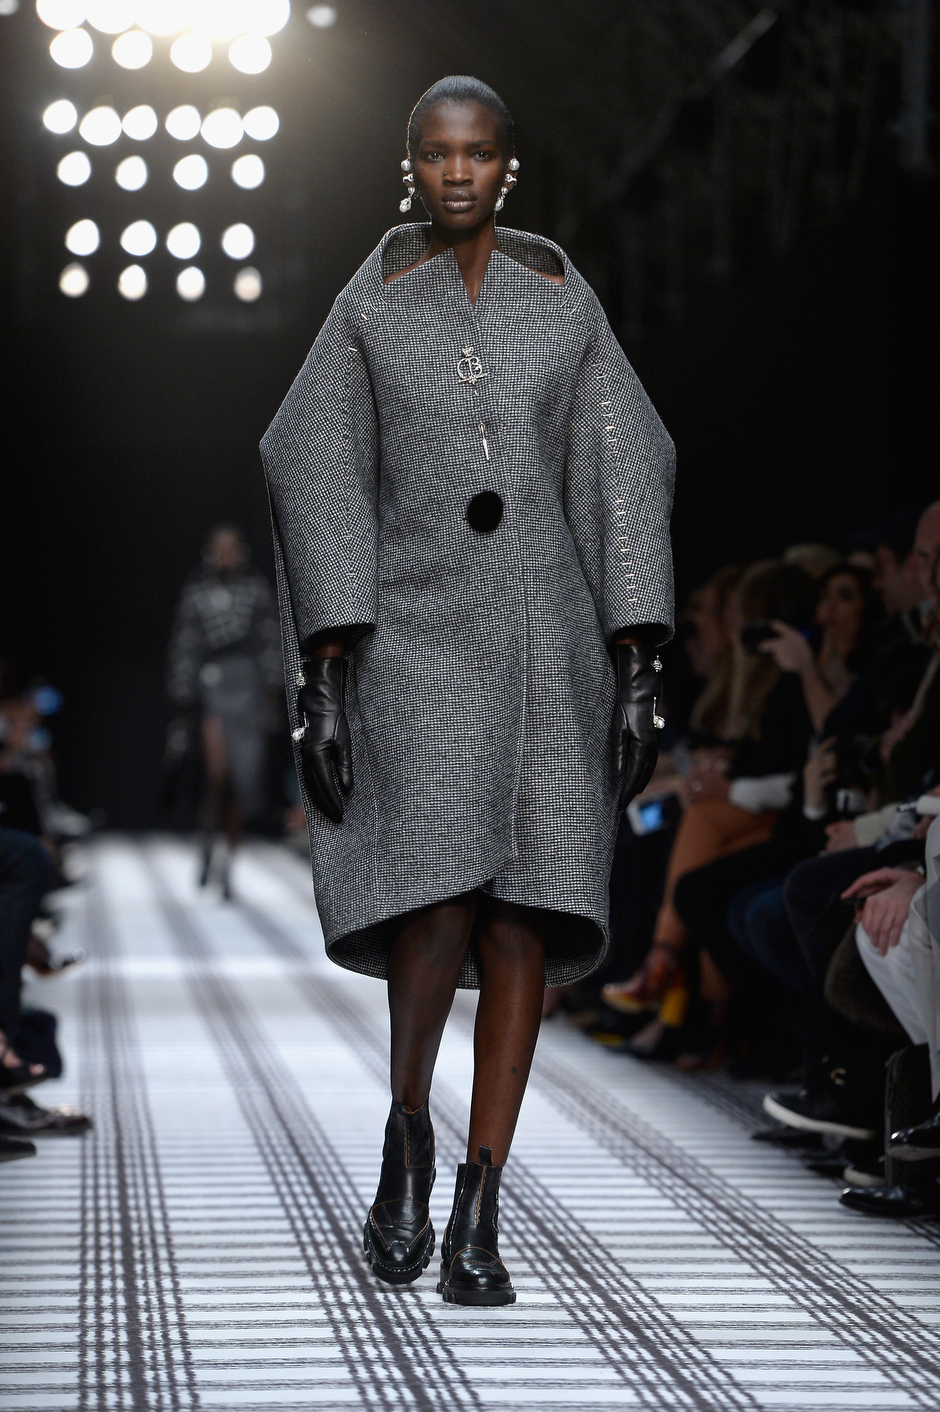 . A model walks the runway during the Balenciaga show as part of the Paris Fashion Week Womenswear Fall/Winter 2015/2016 on March 6, 2015 in Paris, France.  (Photo by Pascal Le Segretain/Getty Images)